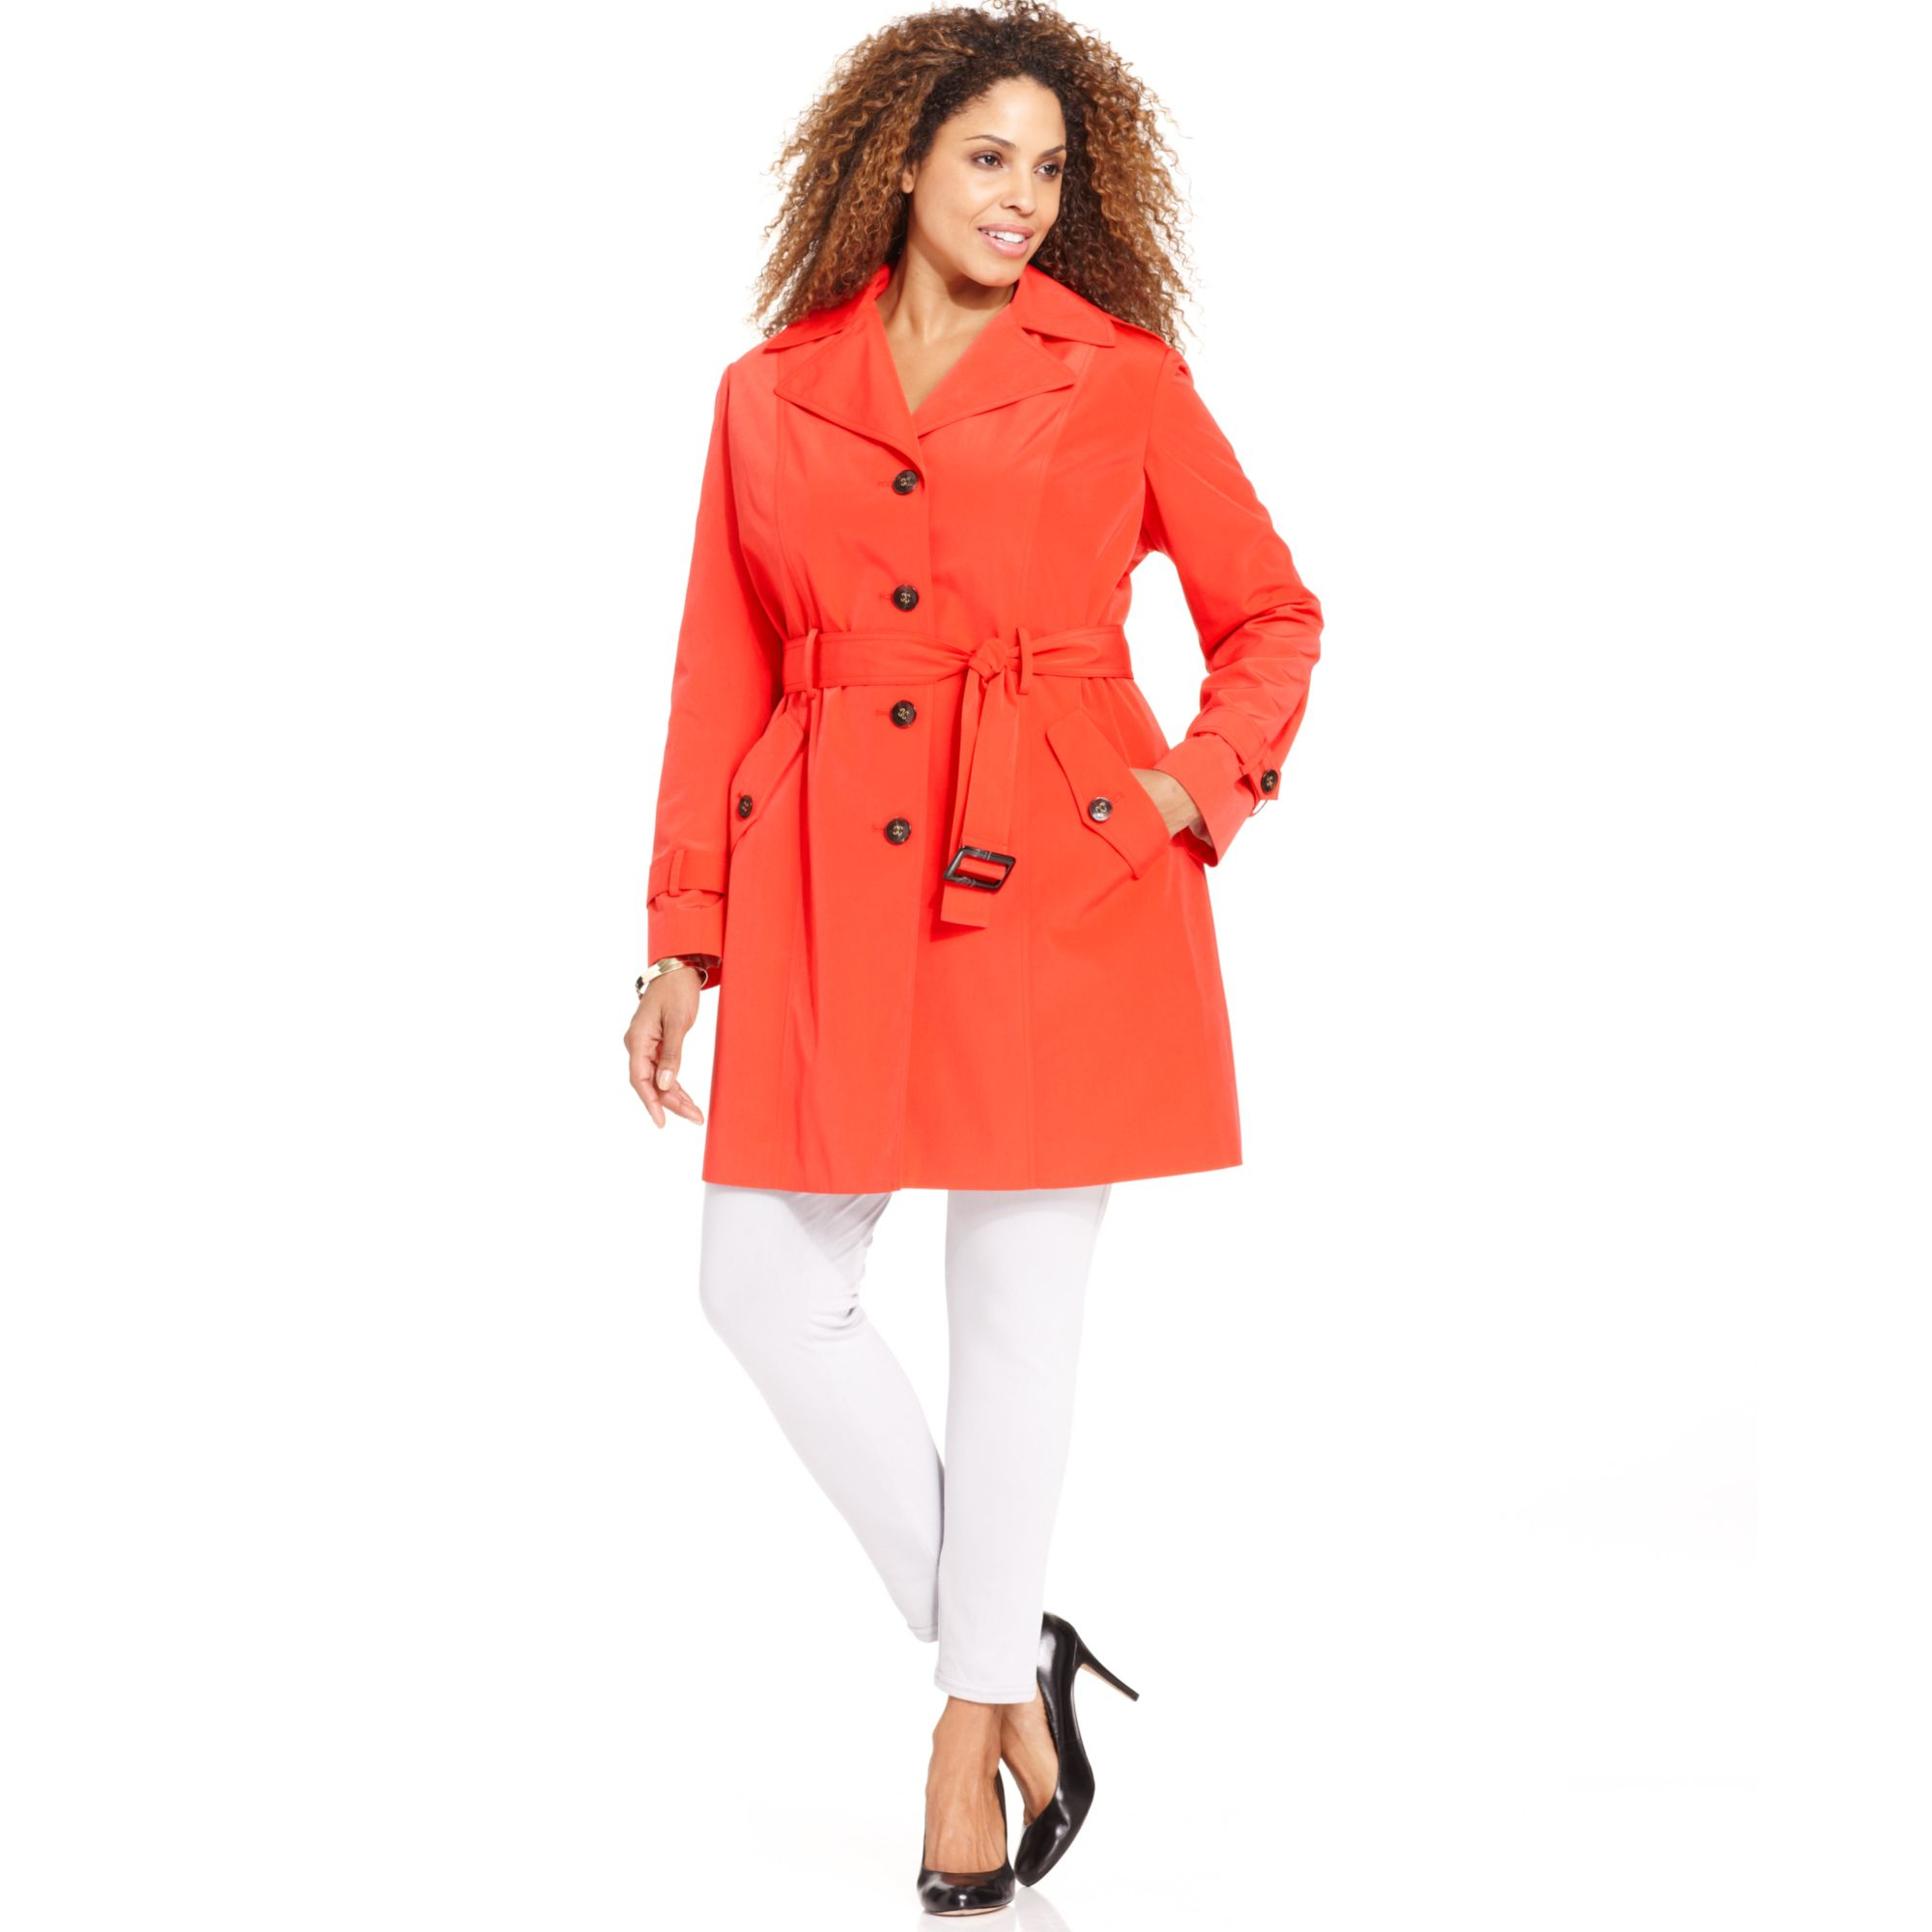 Our selection of outerwear for women includes trench coats, light jackets, womens blazers, tuxedo jackets for women and more. We select each style for you to be great quality at an awesome price. Choose a short shrug or wrap or a long trench style coat - whatever your mood and style dictate.